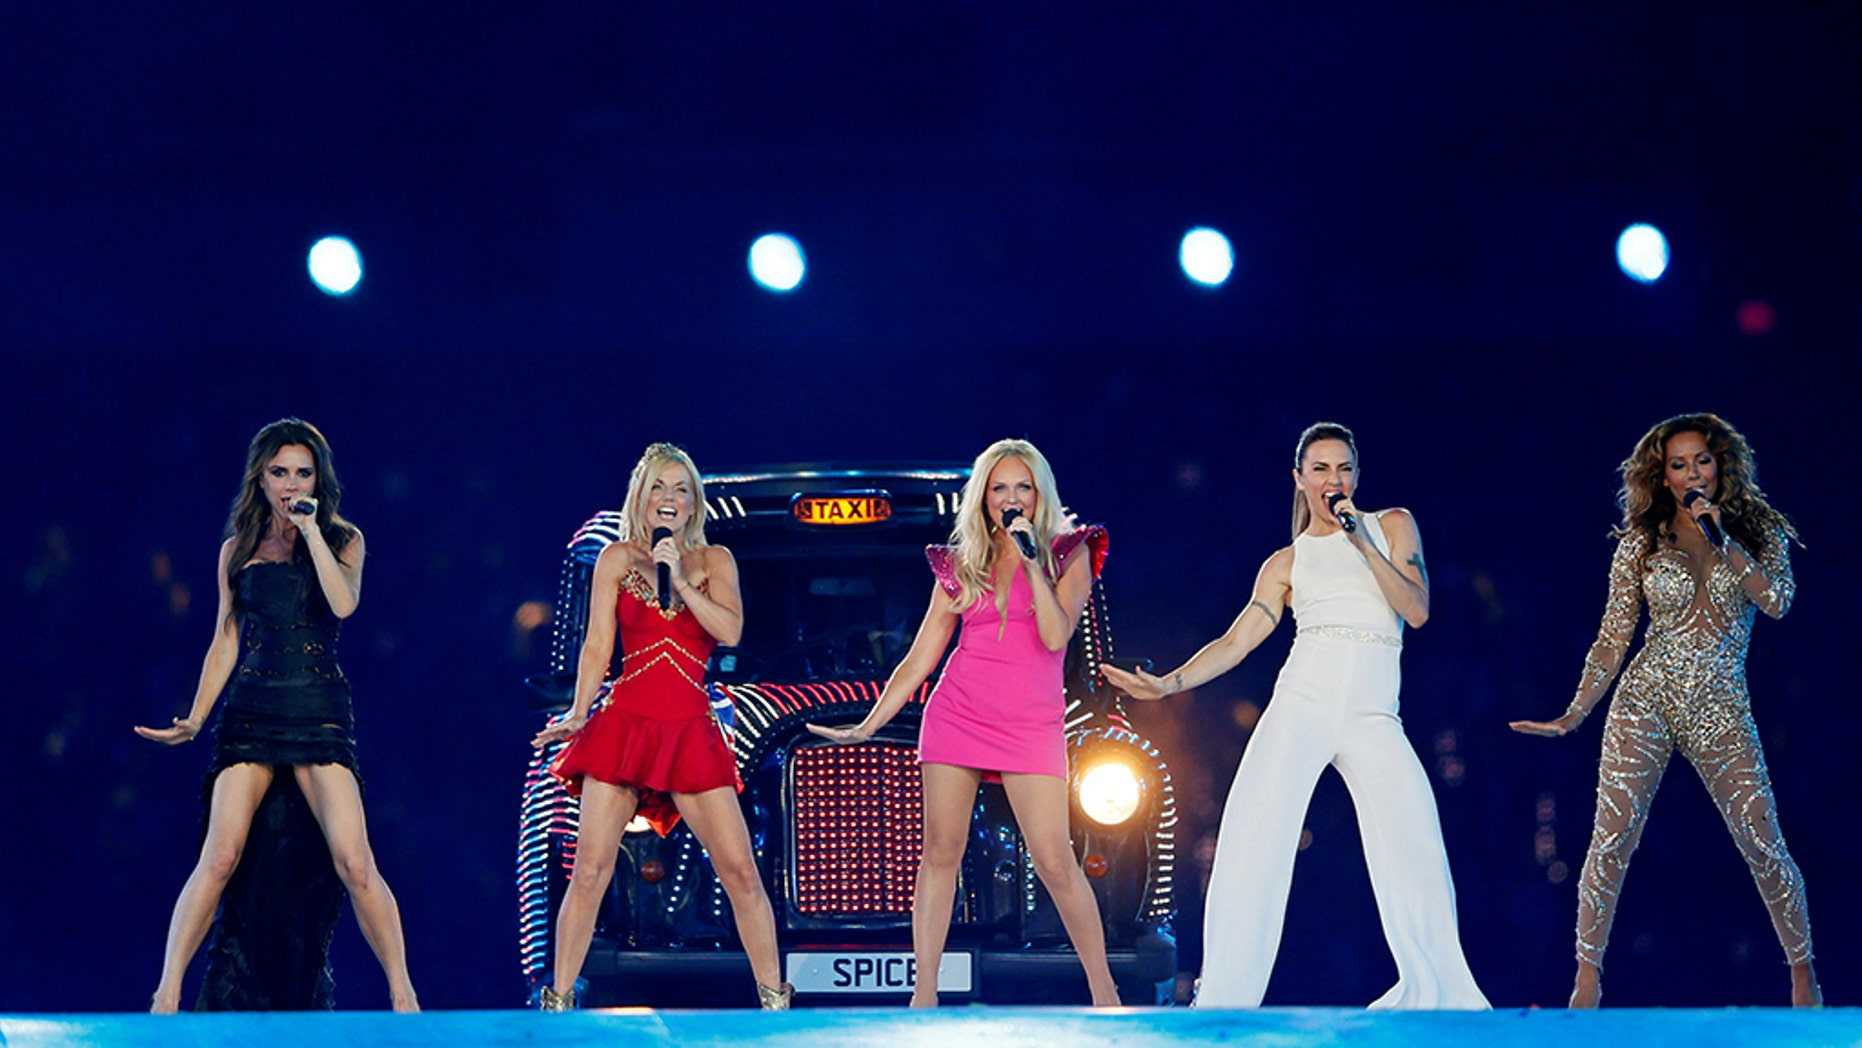 The last time the Spice Girls performed was at the London 2012 Summer Olympics.